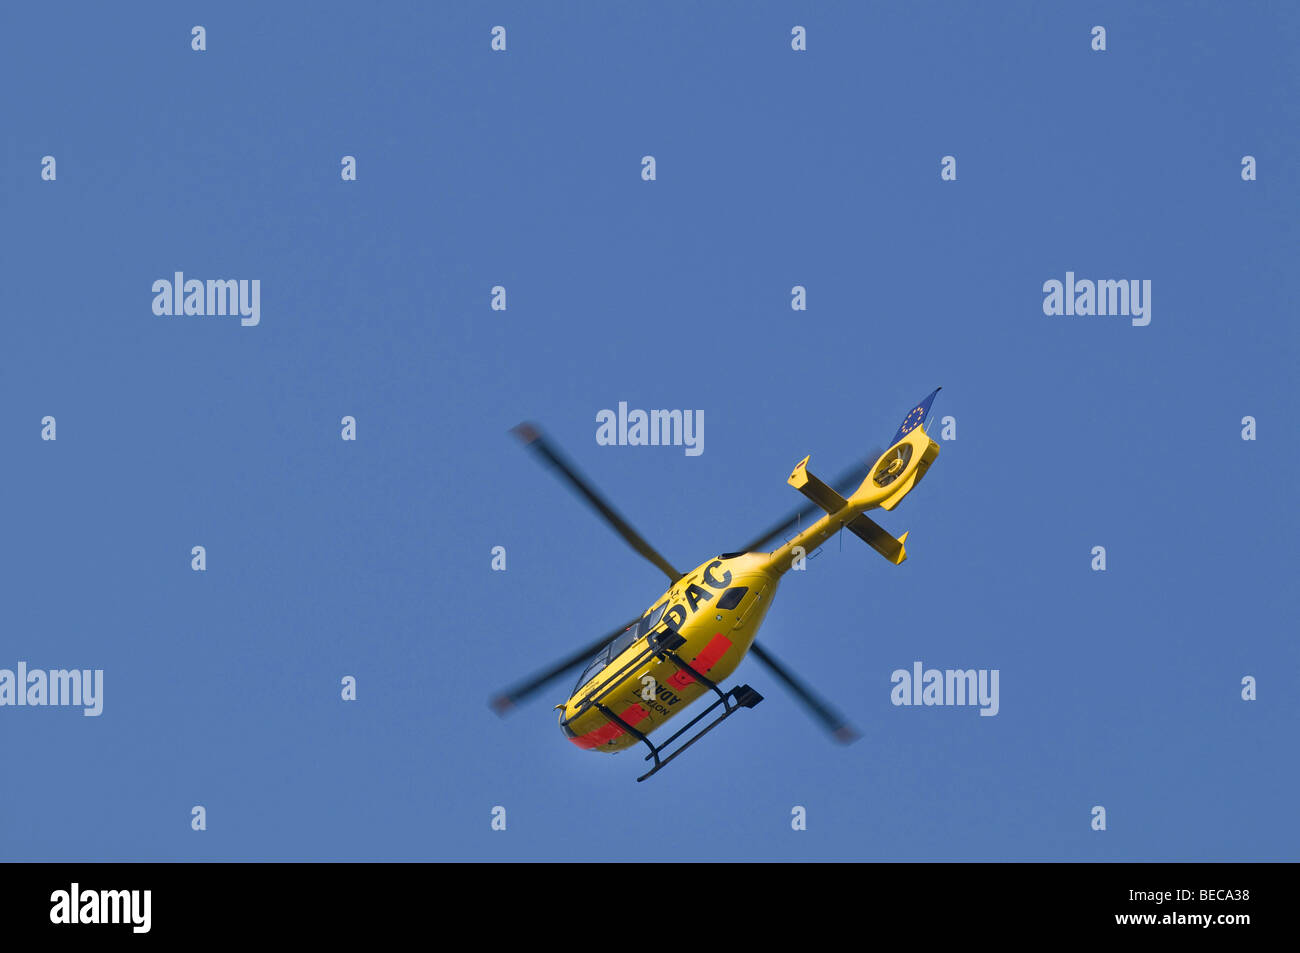 Air rescue helicopter from the ADAC Luftrettung GmbH, ambulance helicopter, Christoph 20 in flight seen from below - Stock Image